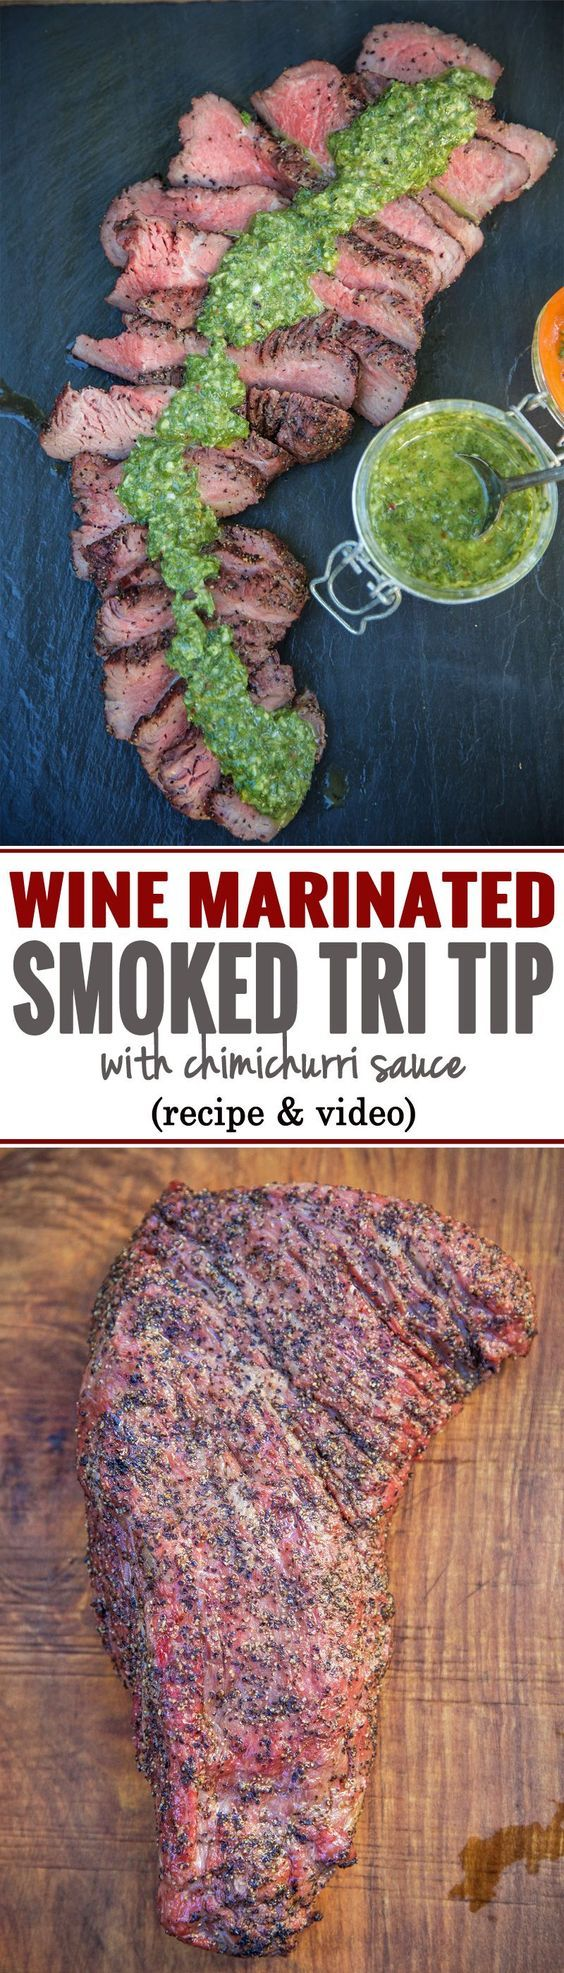 Red Wine Marinated Smoked Tri Tip with Chimichurri Sauce. Full recipe and video over on vindulge.com!